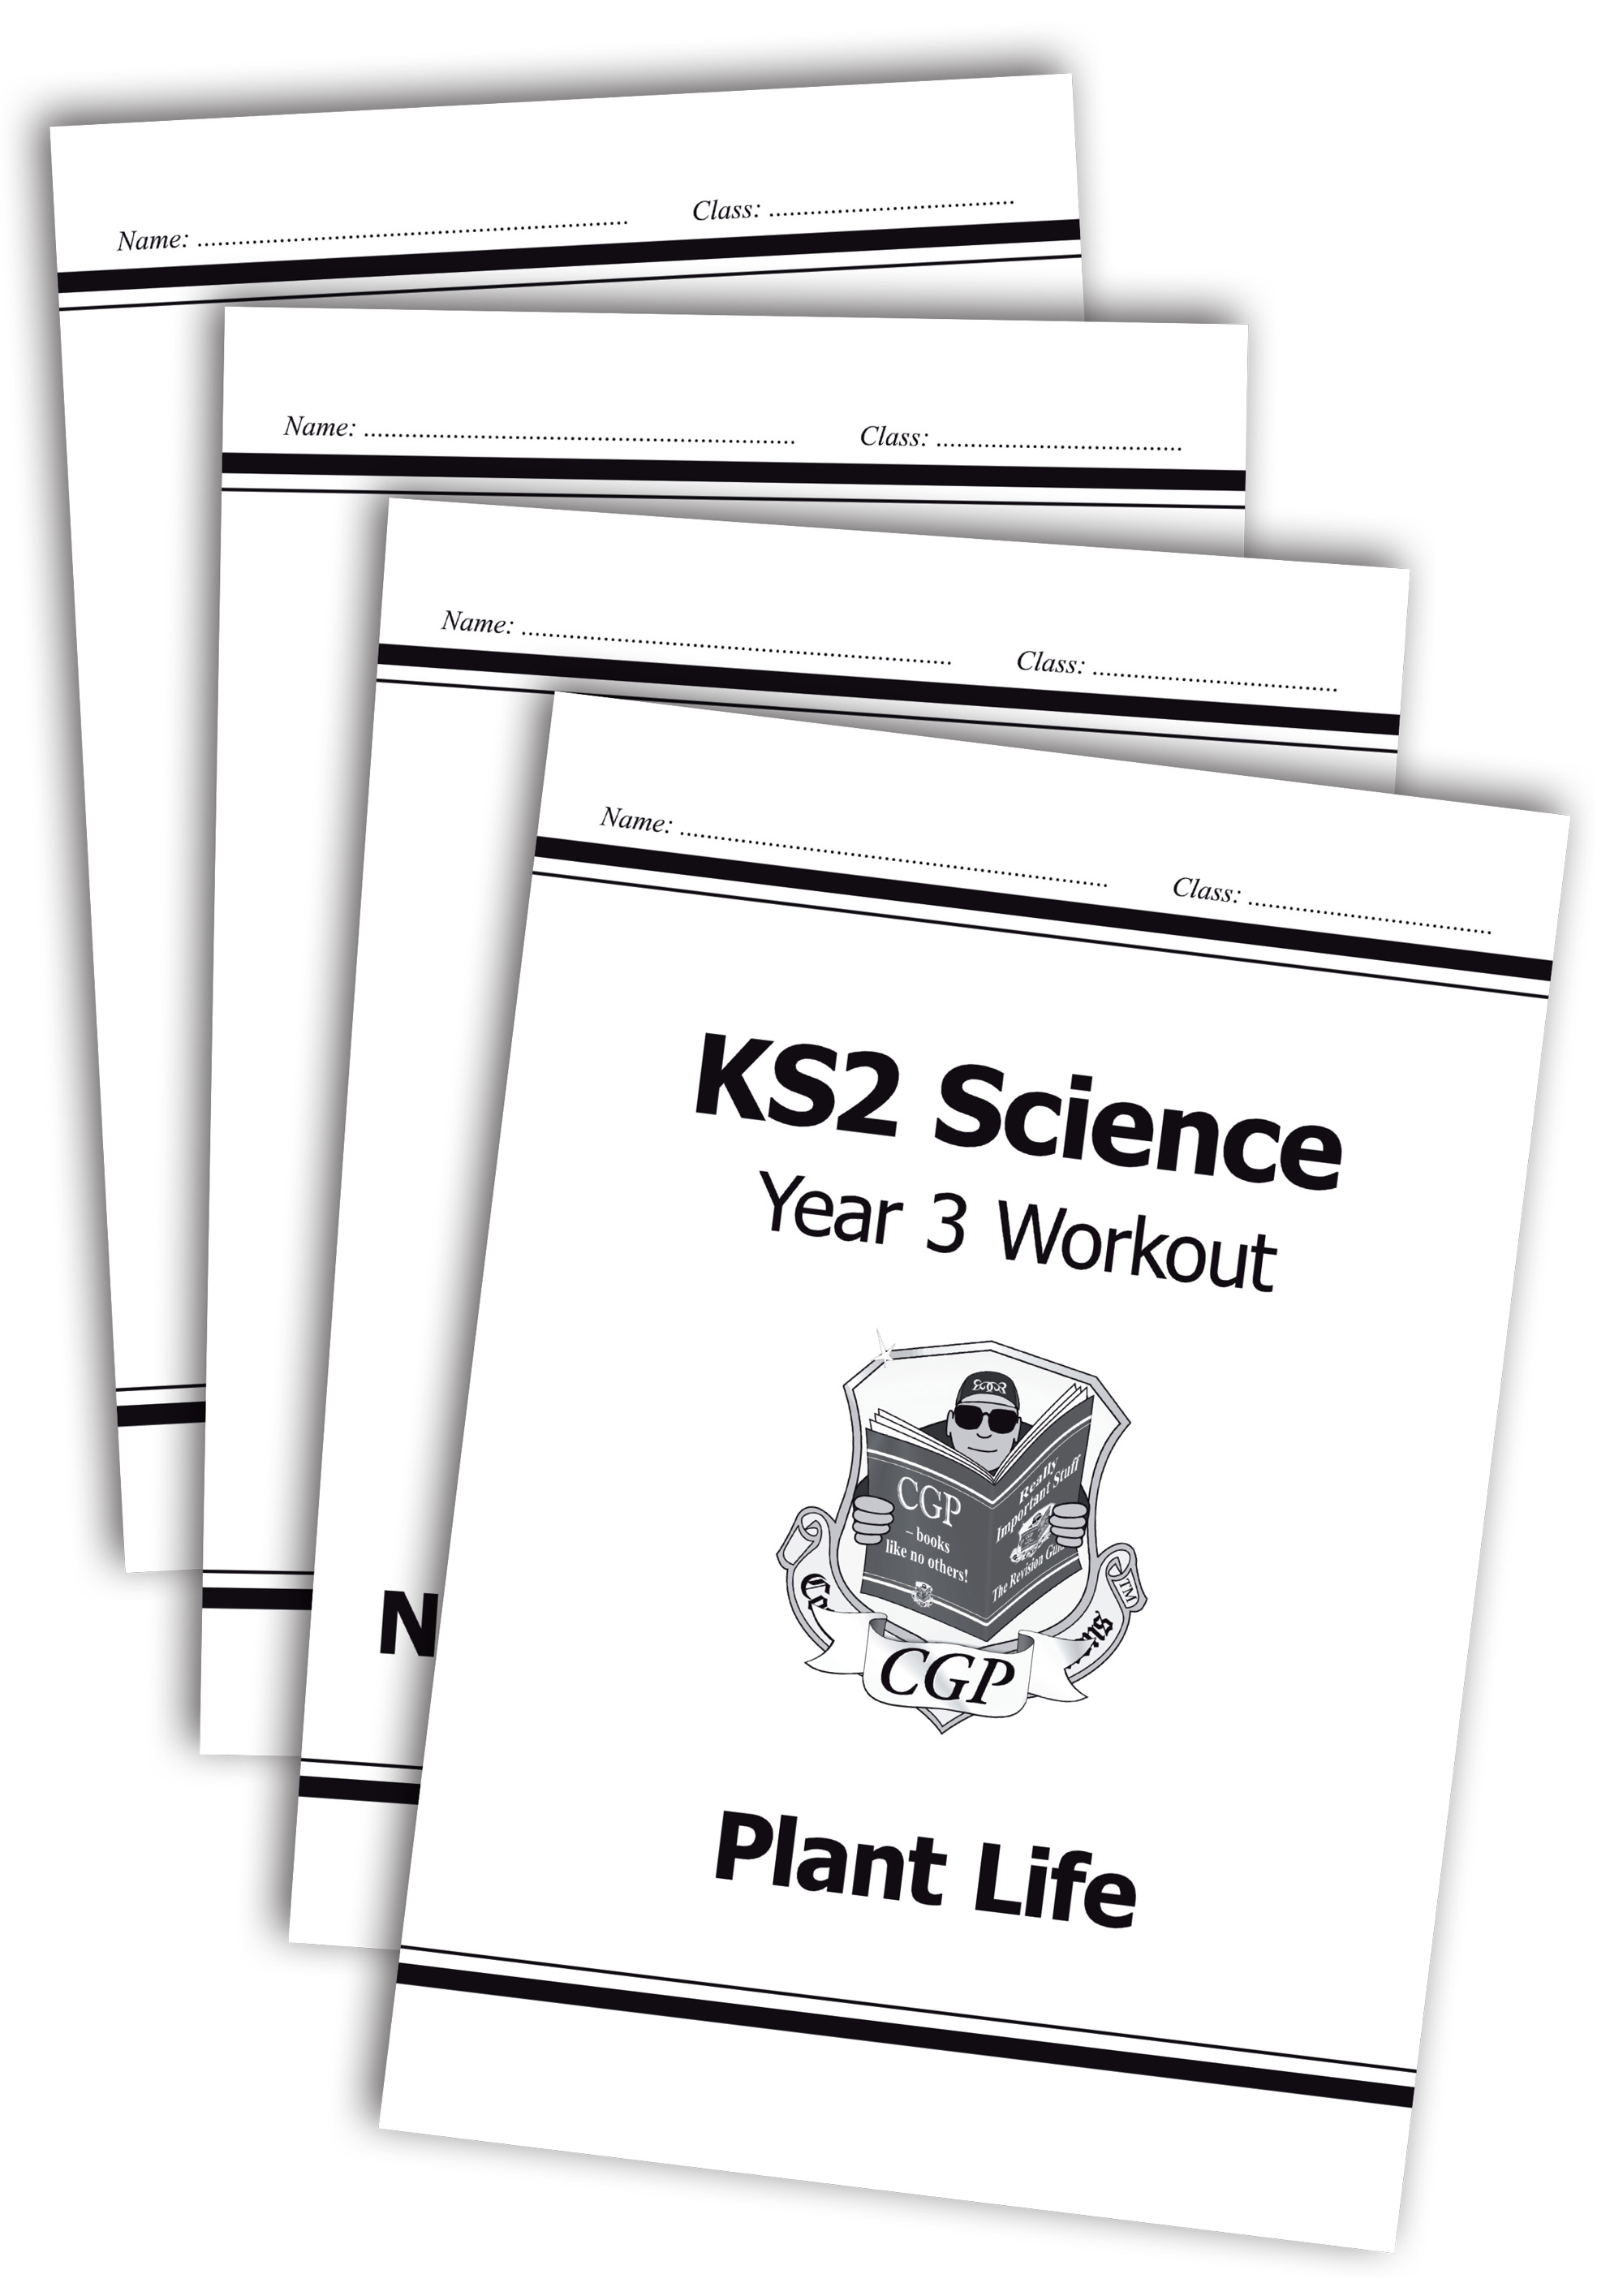 SWB322 - KS2 Science Year 3 Workout Bundle